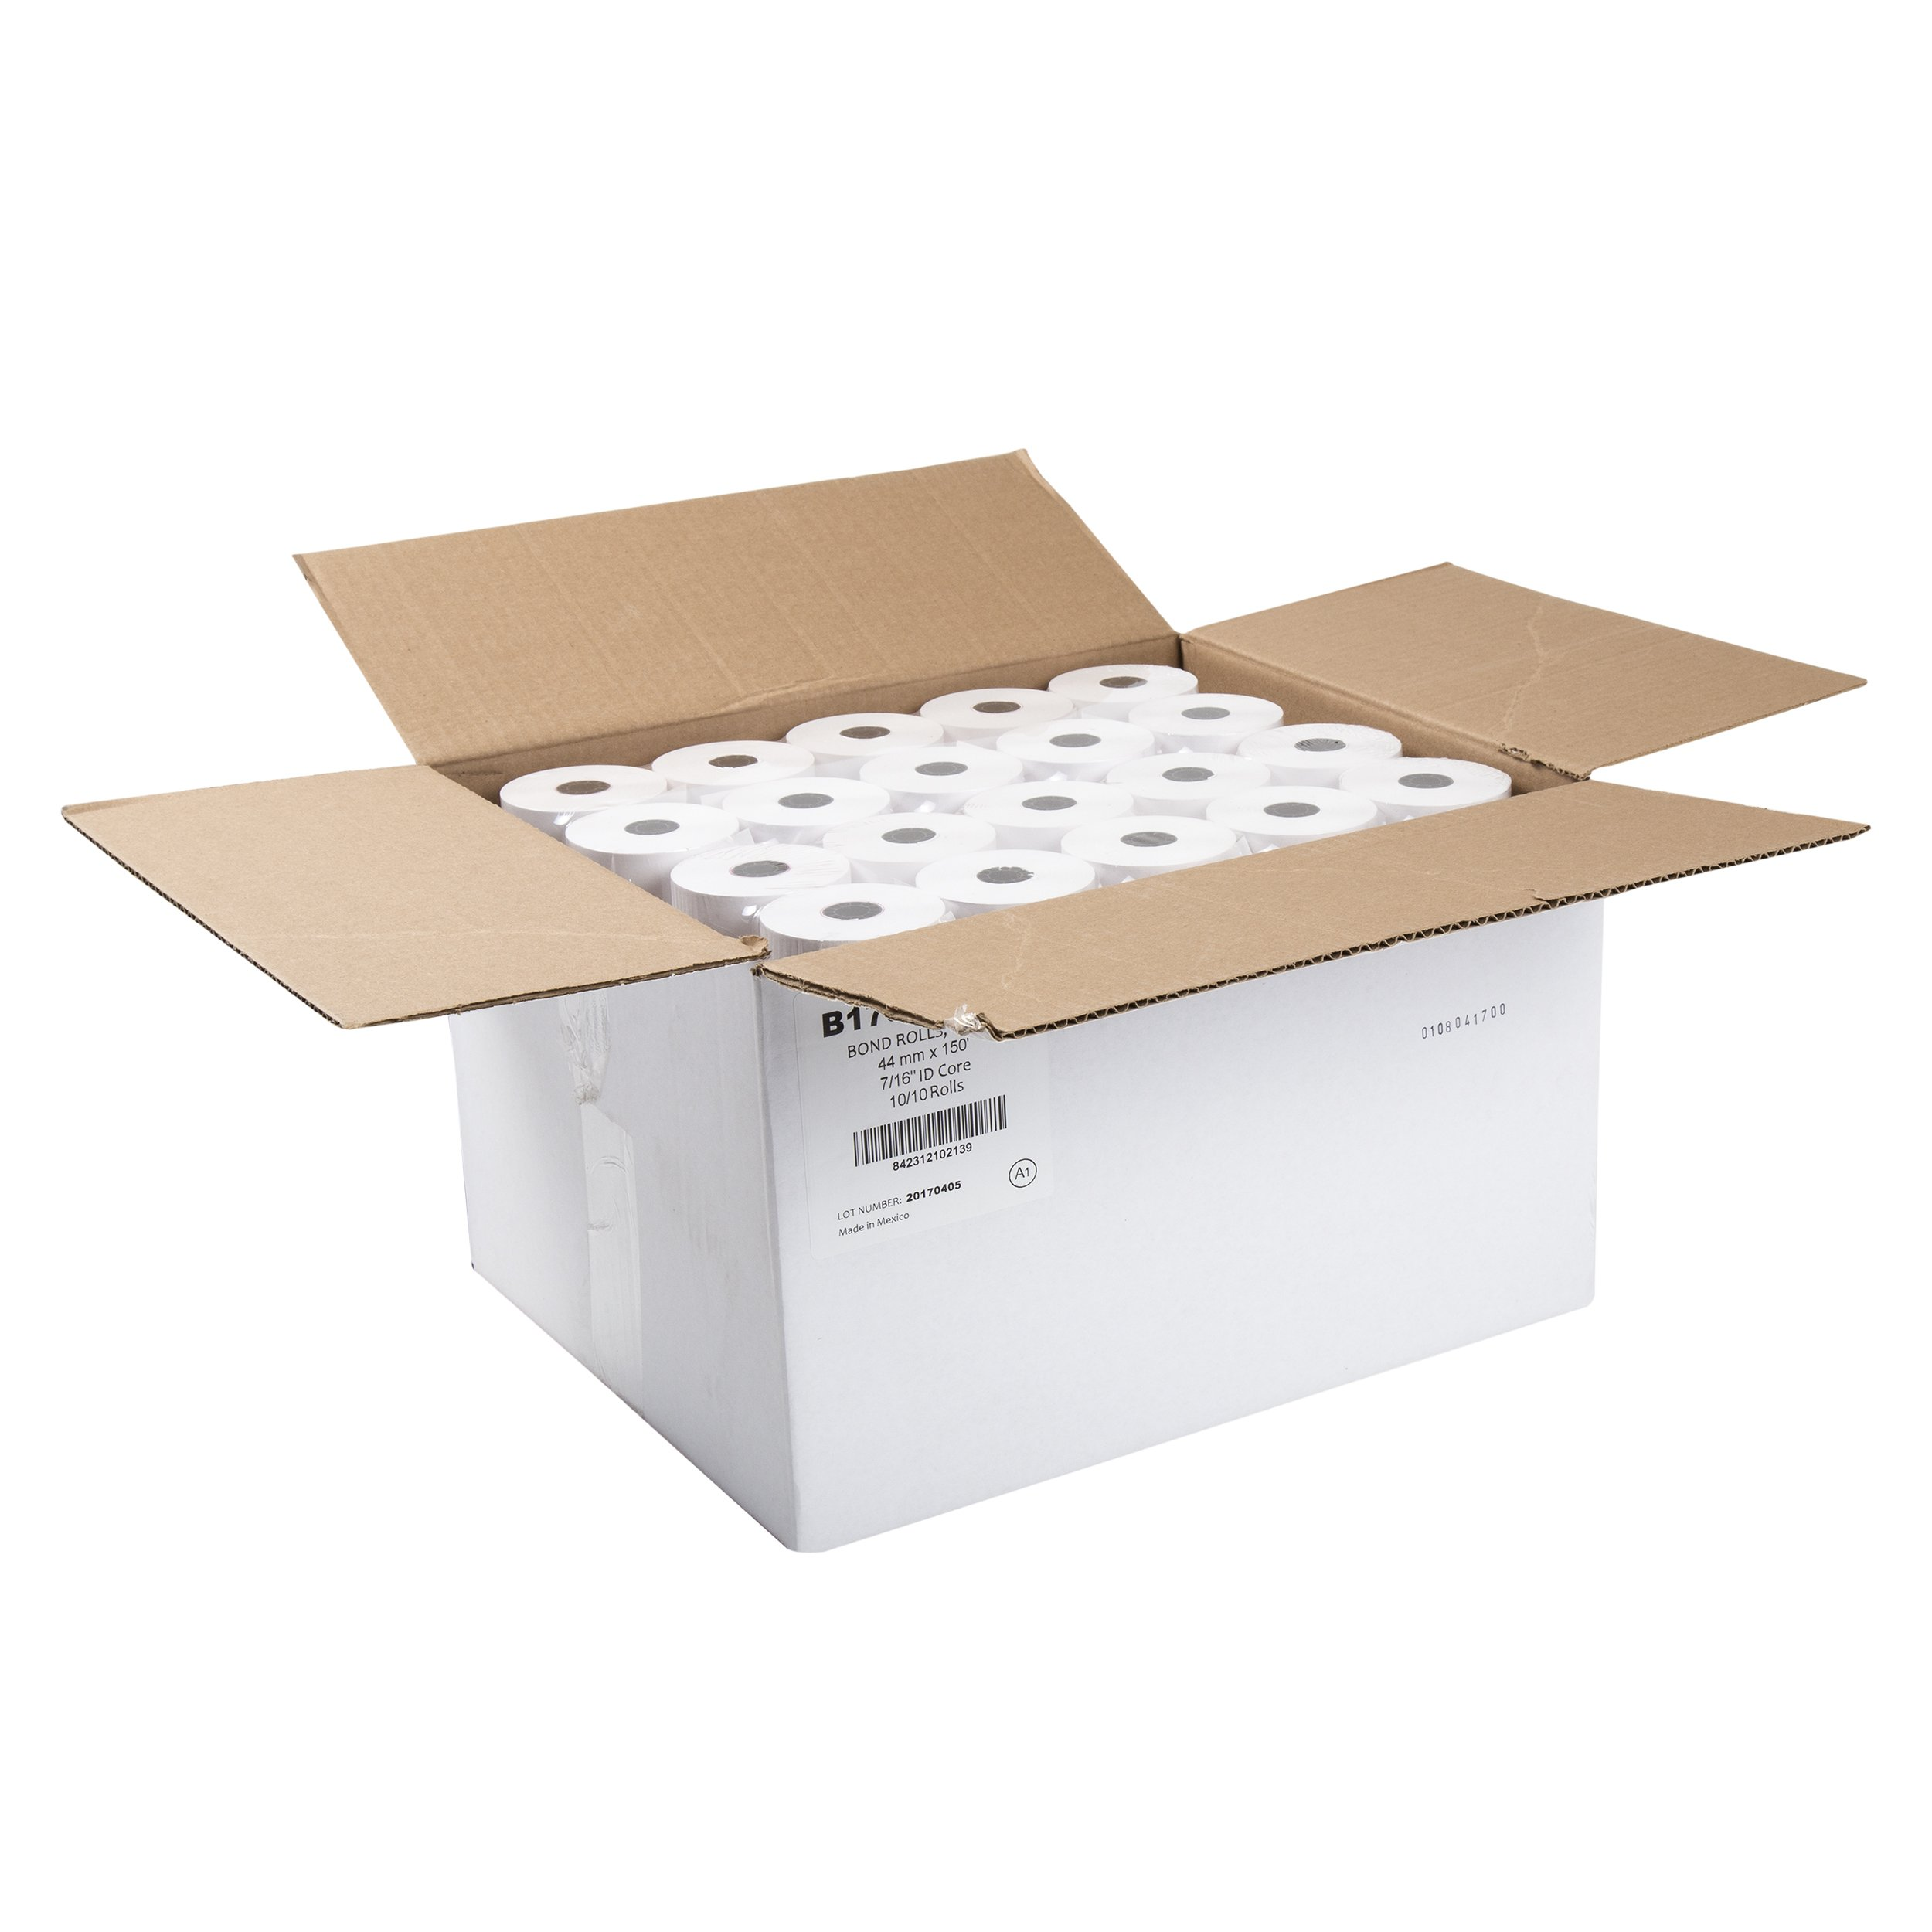 AmerCare 44mm x 150' White Bond Register Rolls with 7/16'' ID Core, 1 Ply, Case of 100